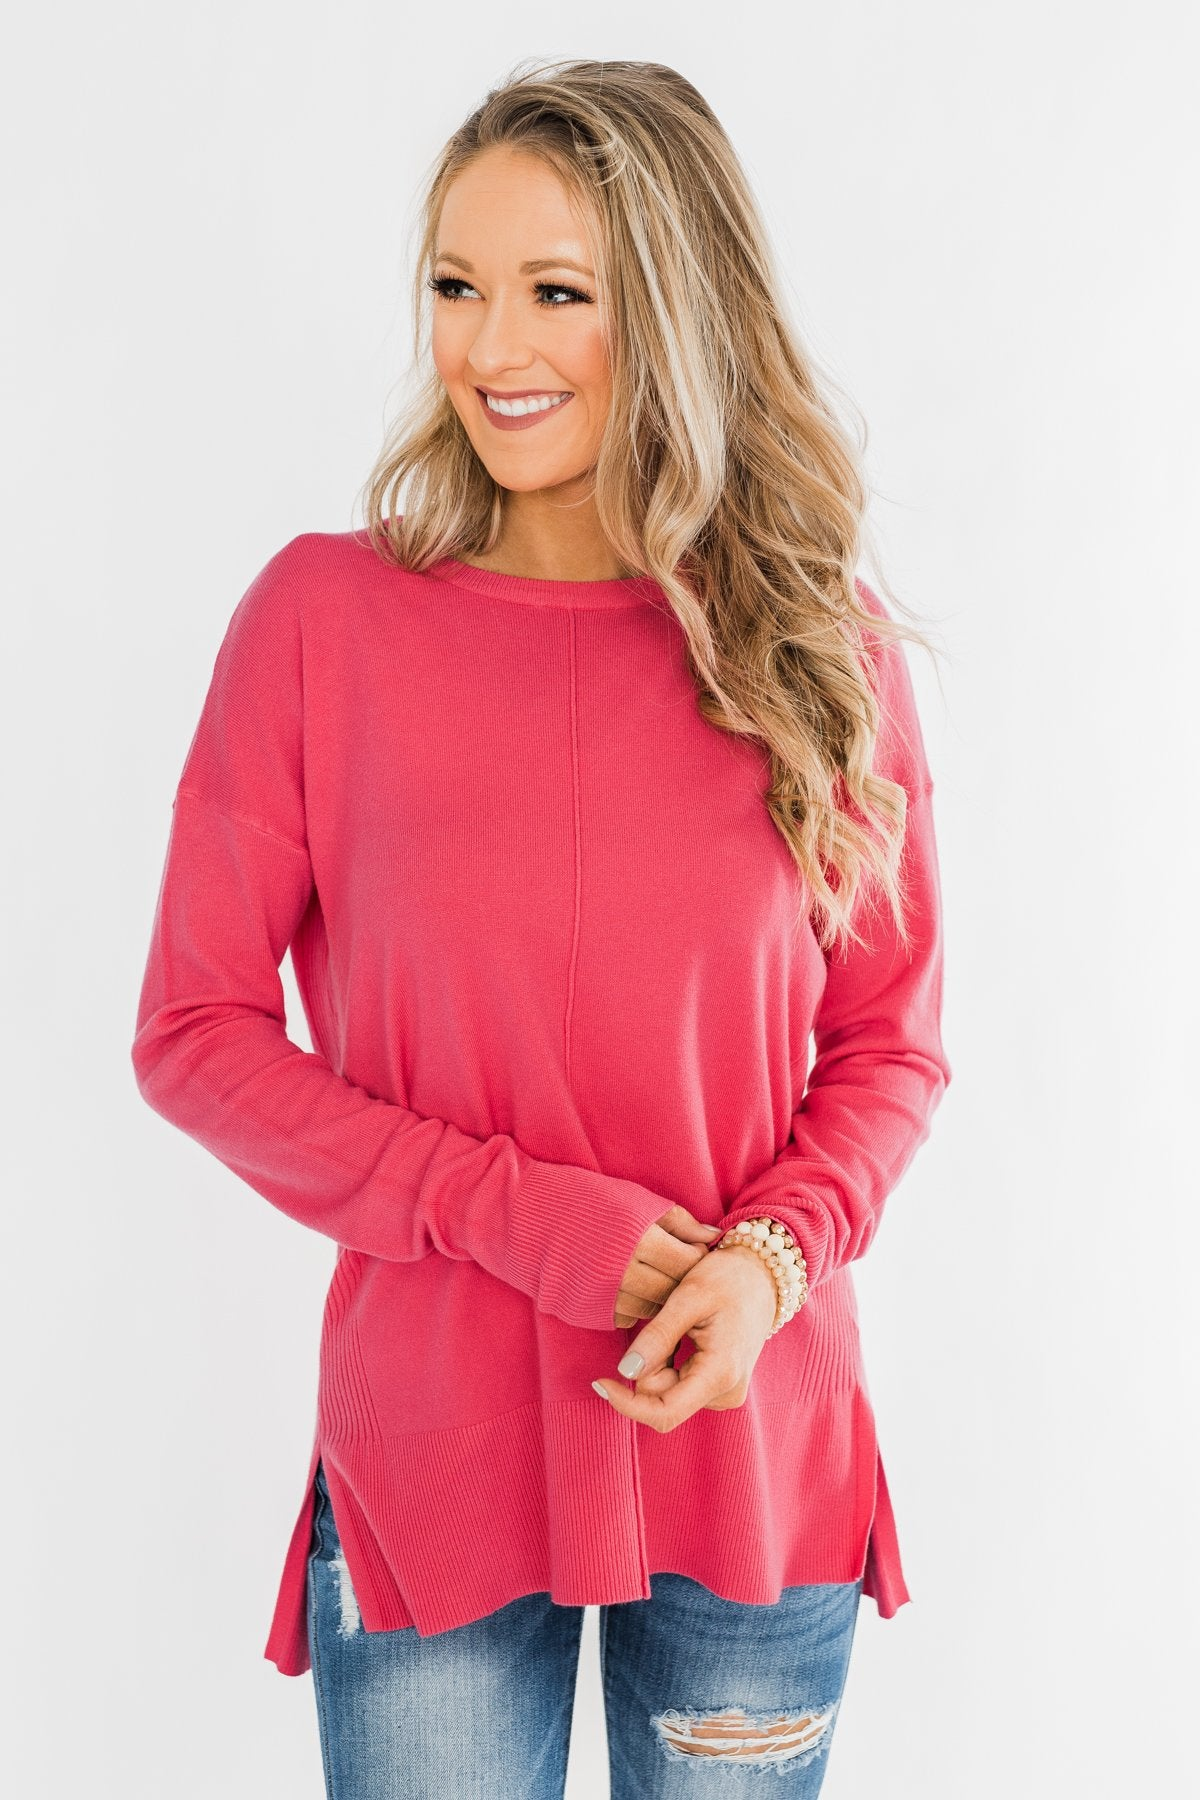 Ready For Anything Knit Sweater- Pink